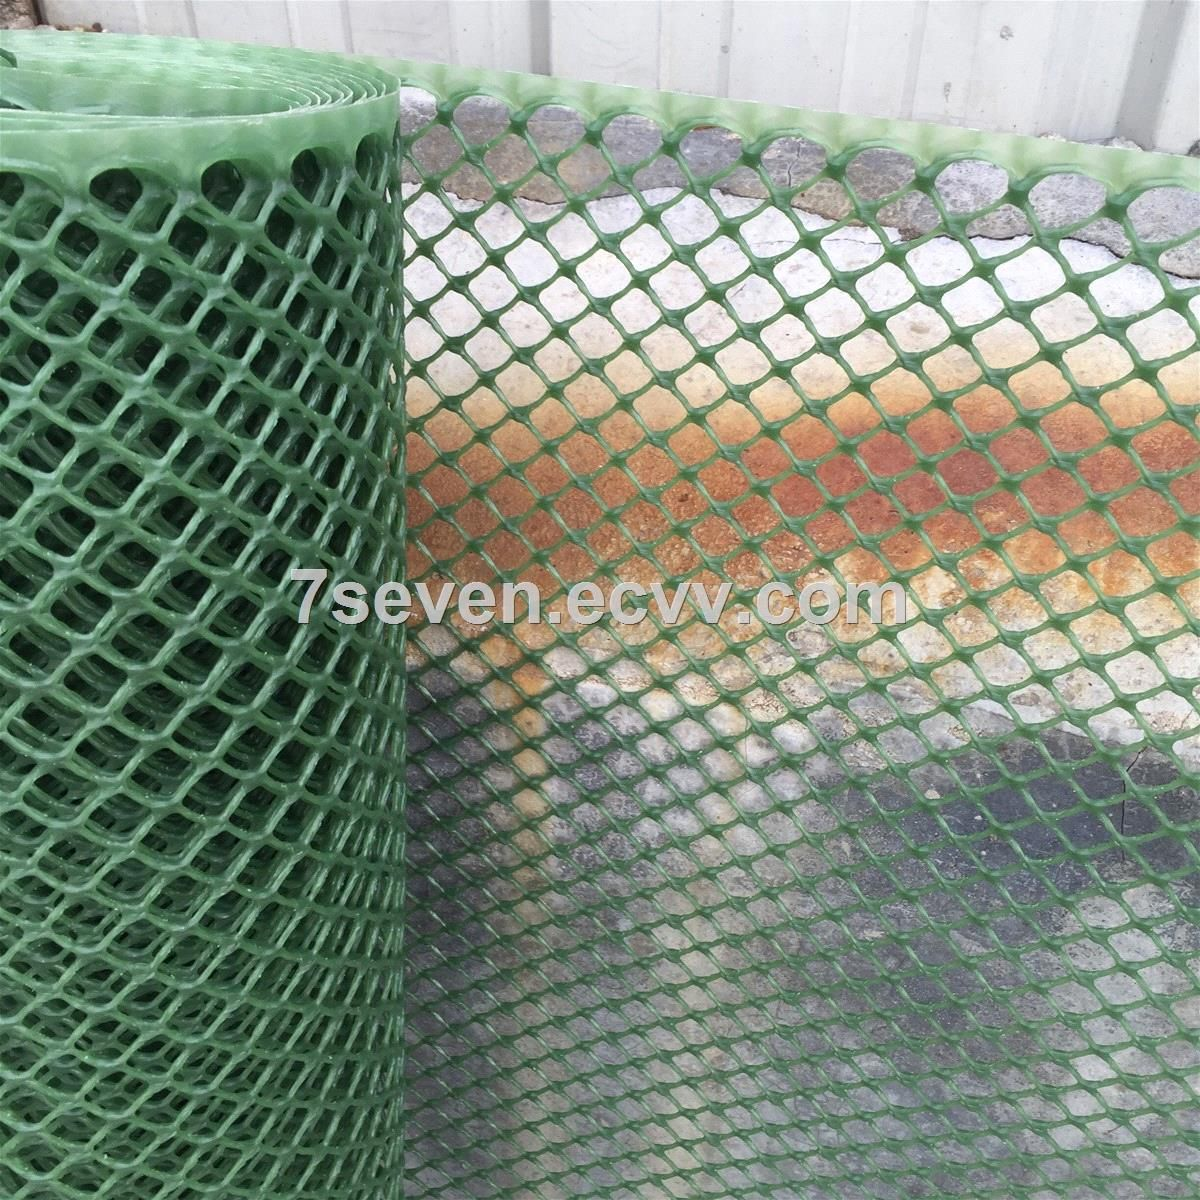 Windbreak Fencing Mesh Windbreak Cladding Plastic Diamond Mesh Netting Ss198509 China Diamond Mesh Netting Windbreak F Mesh Fencing Plastic Mesh Windbreaks